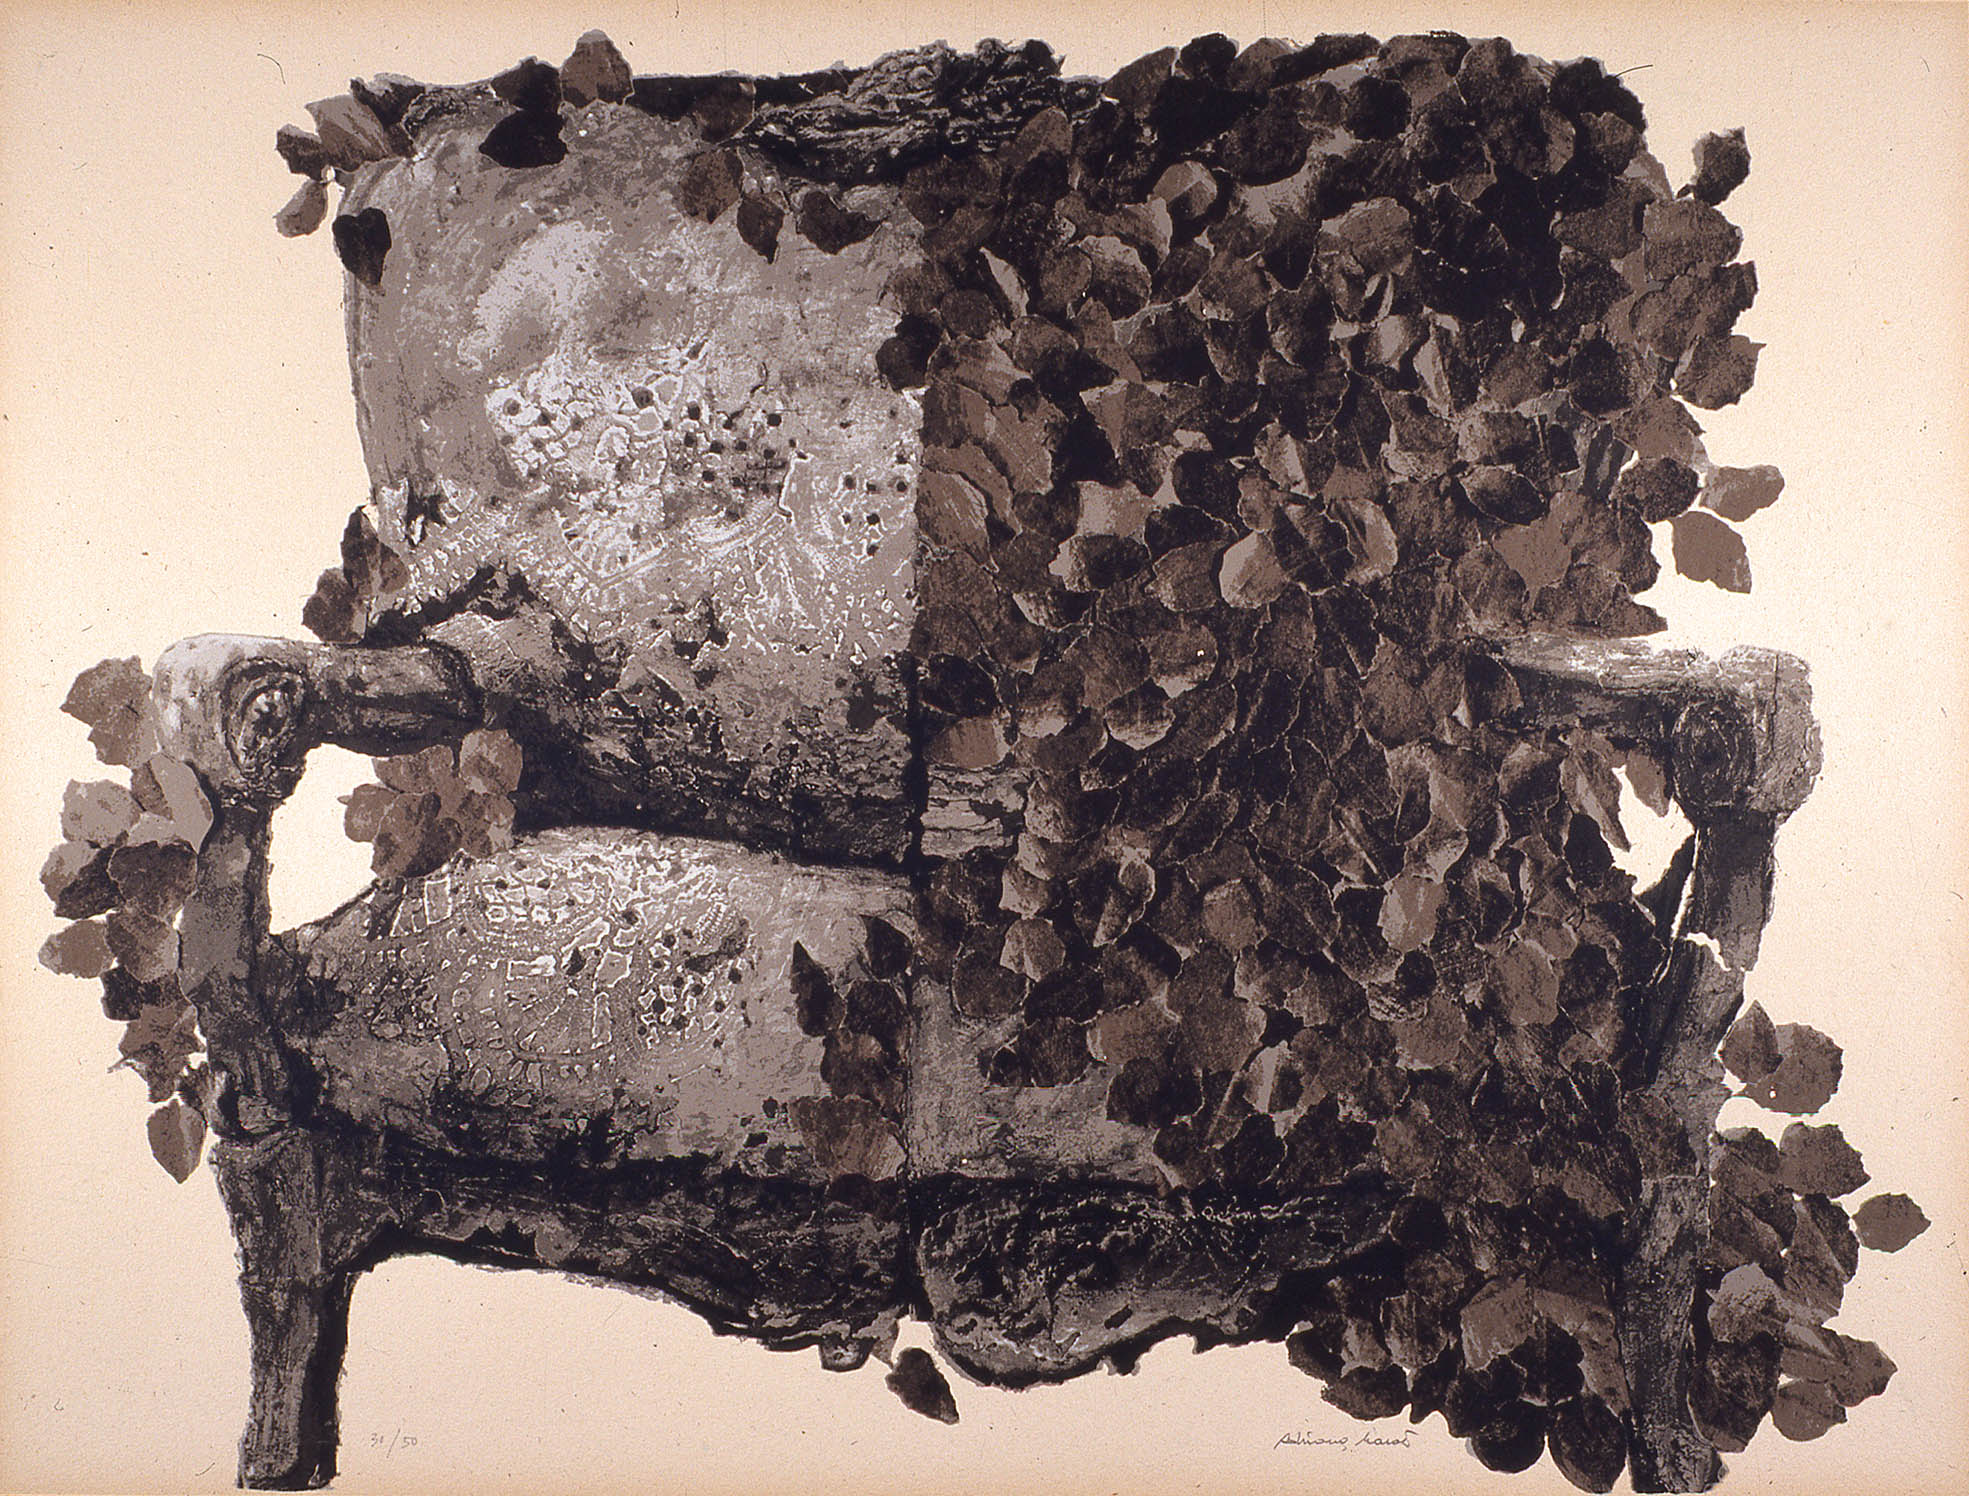 'Divano Marrone Leaves' 1980, 60 x 80 cm, 11 col. Cat. n.461